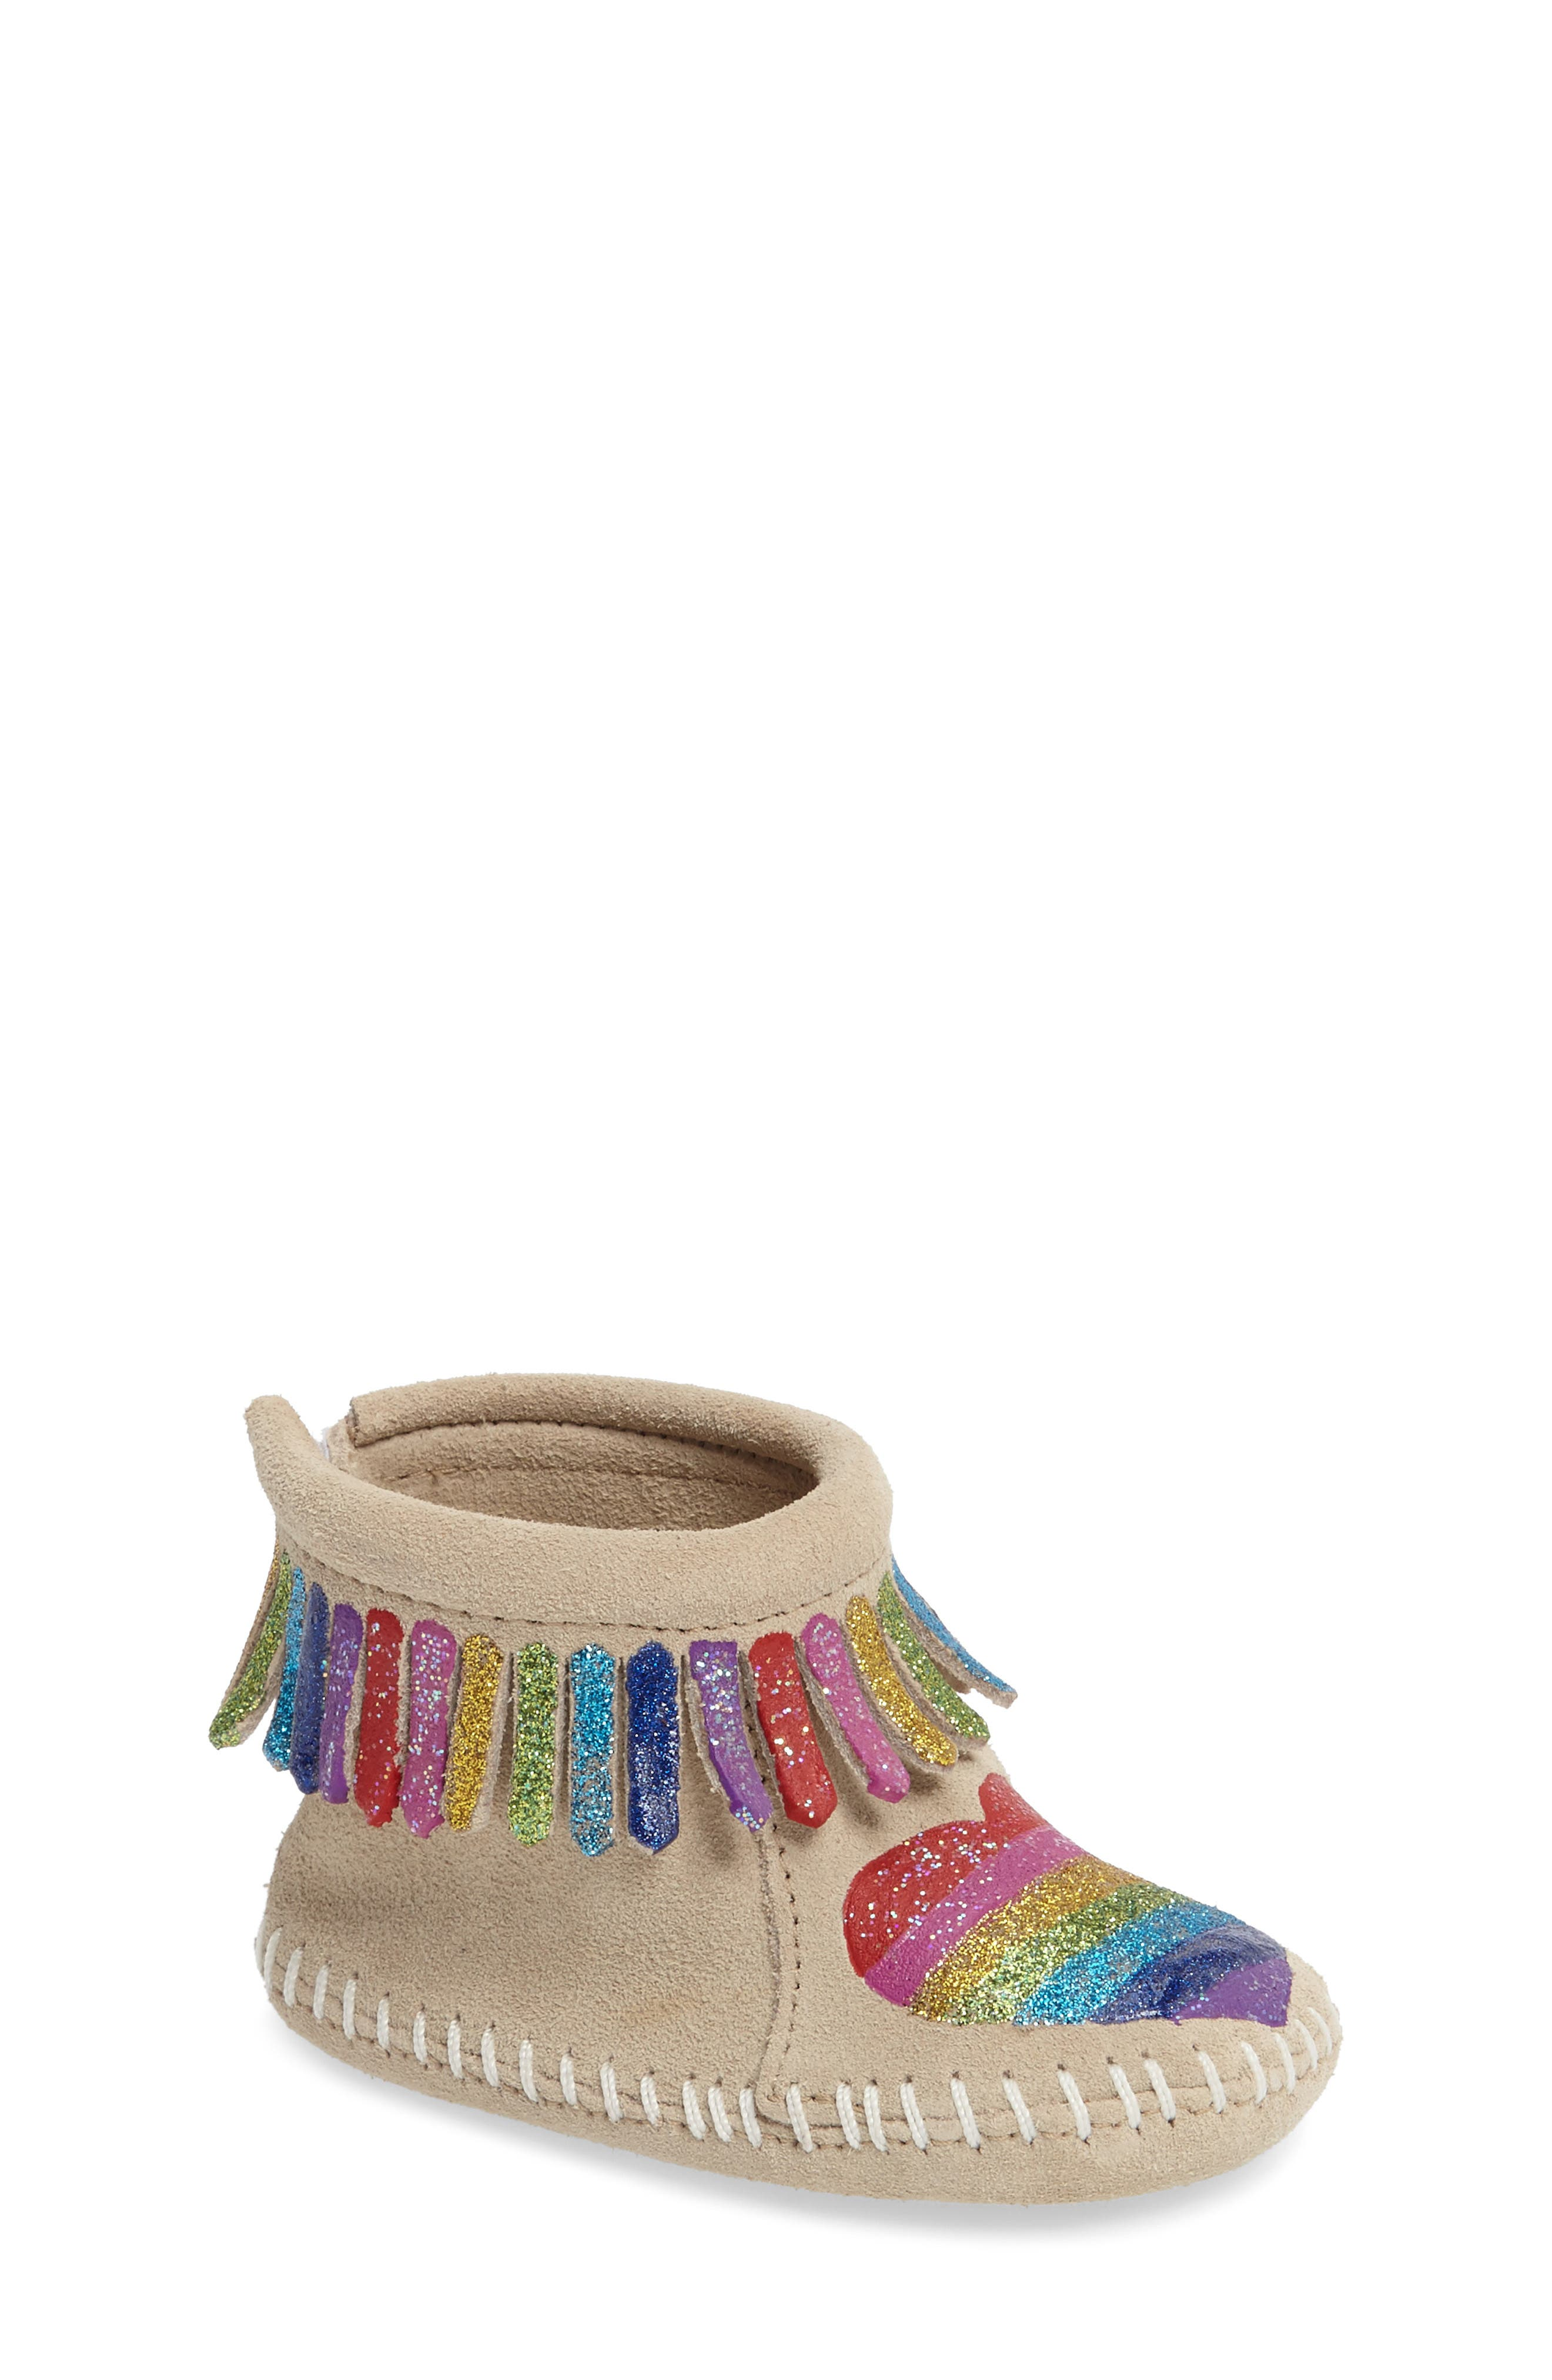 Alternate Image 1 Selected - Minnetonka x Free Range Mama Love One Another Bootie (Baby)